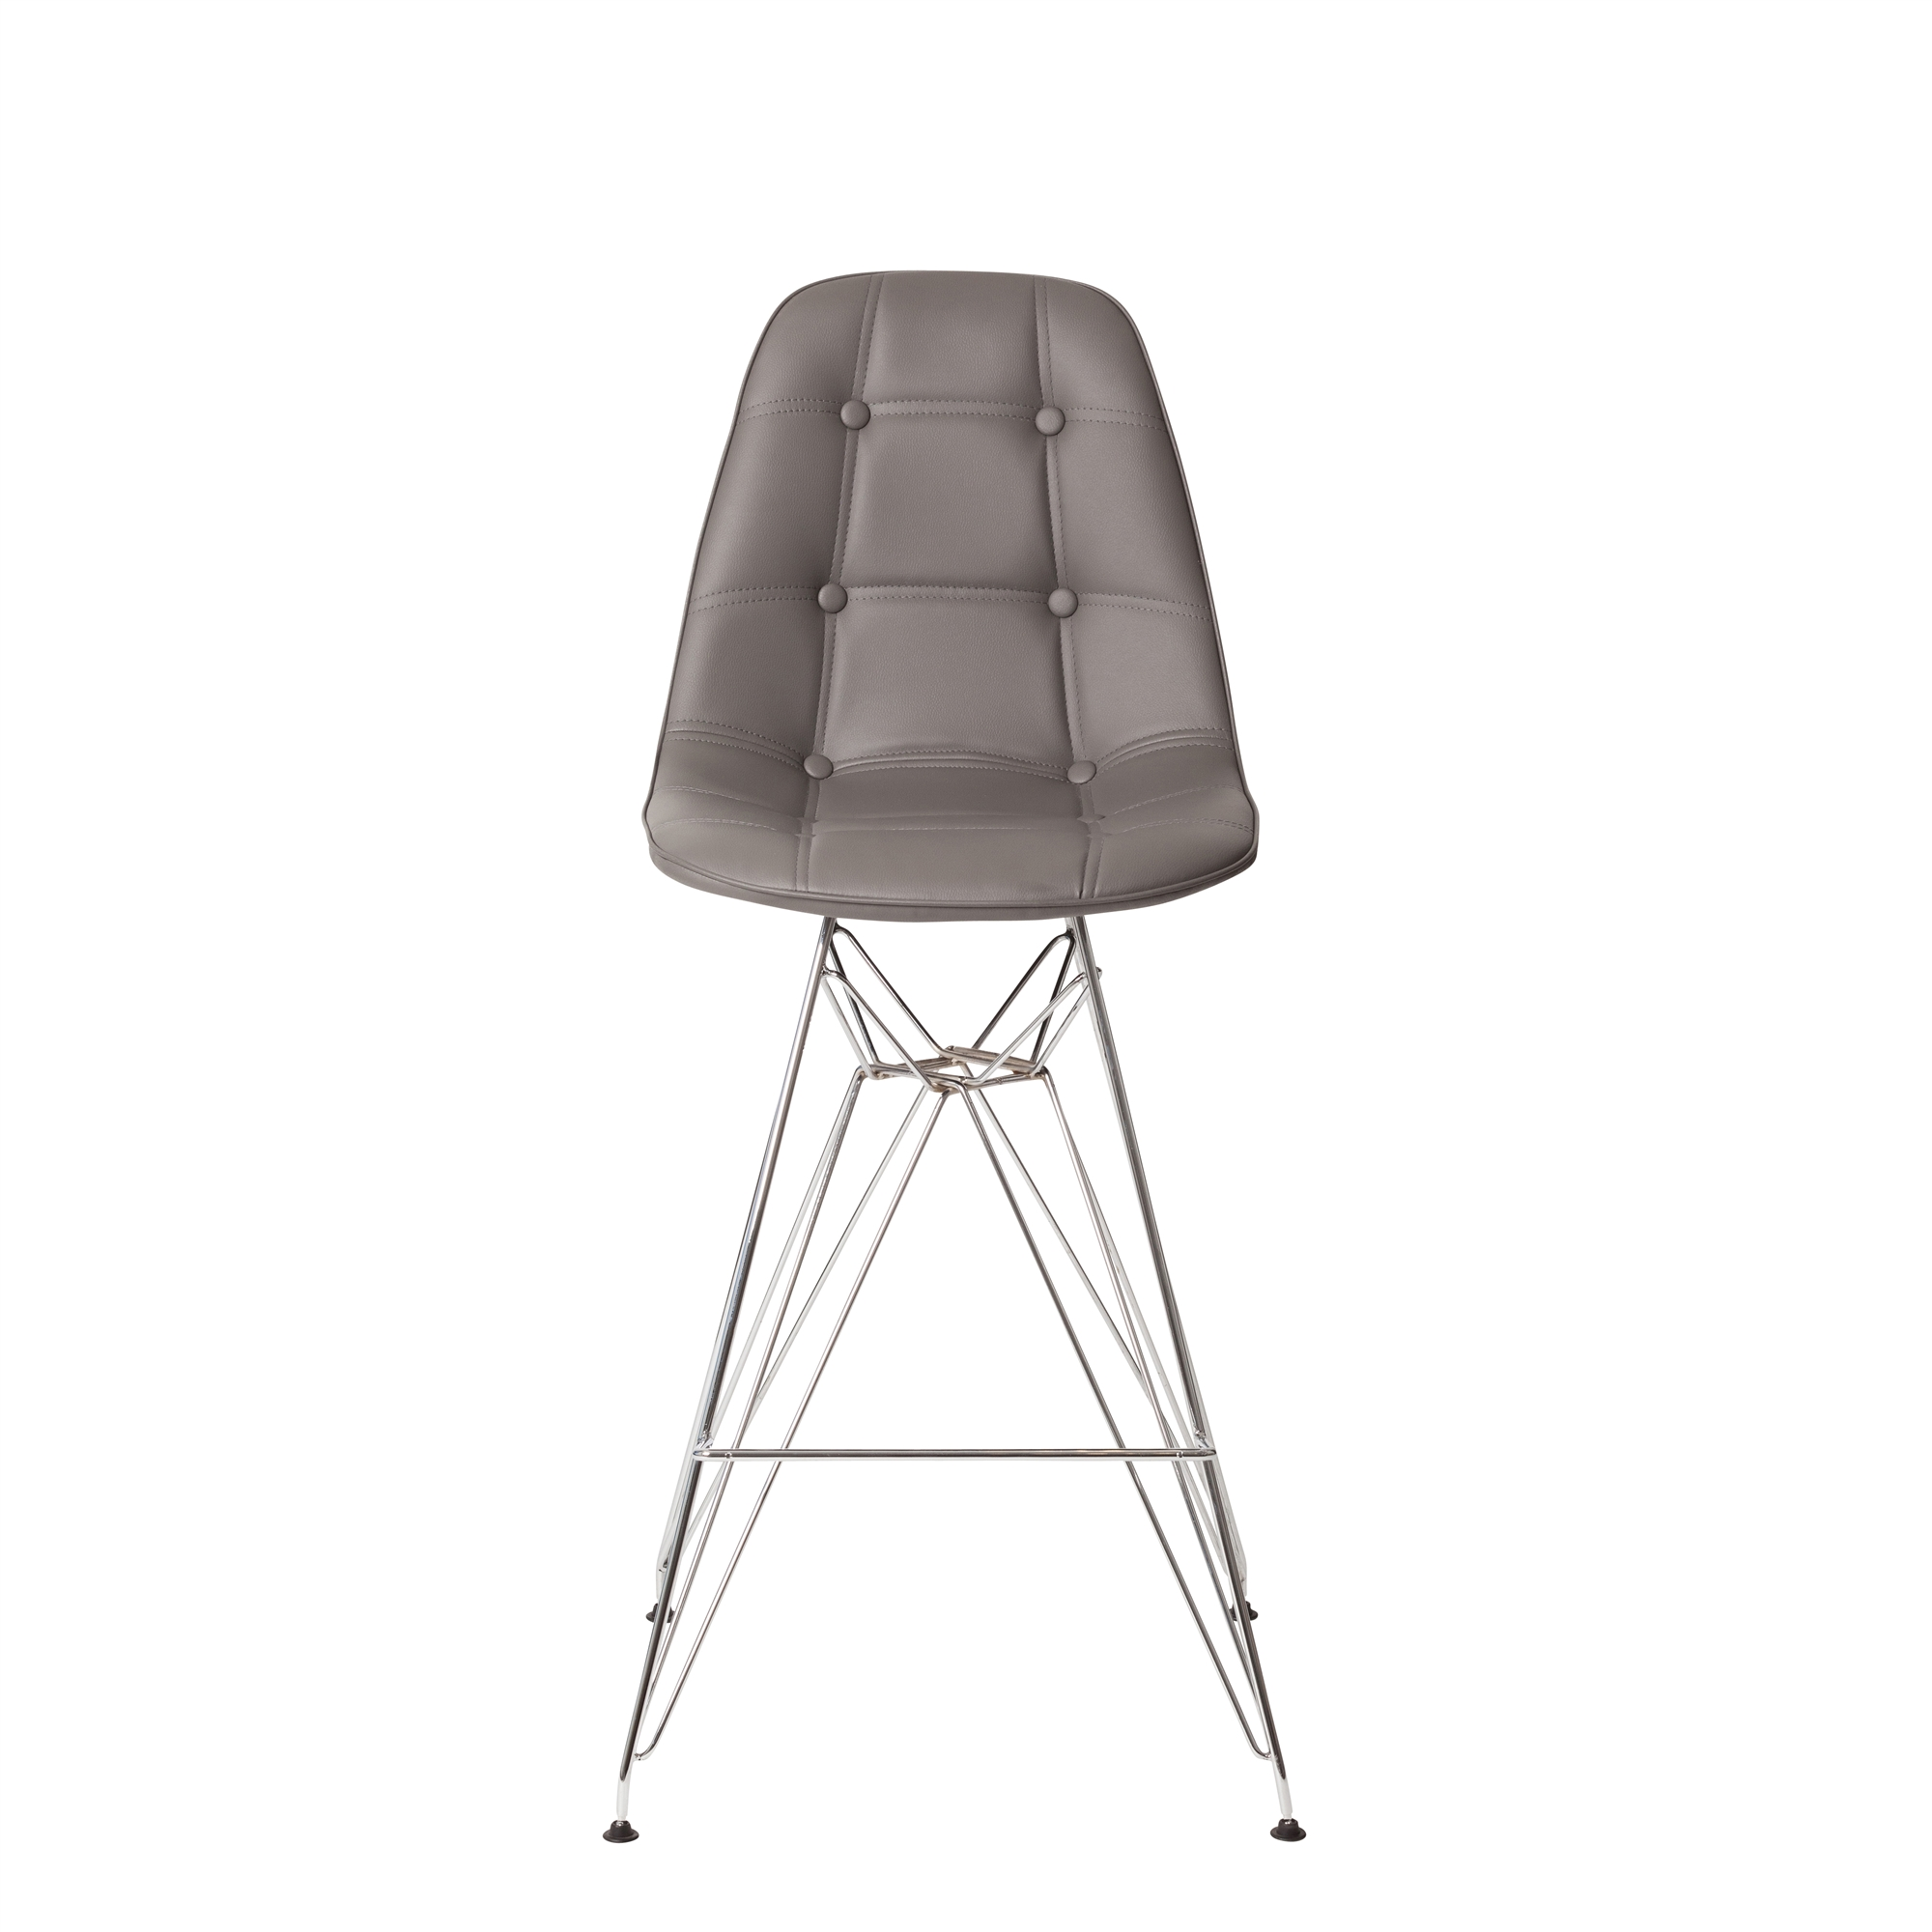 Magnificent Chrome Counter Stool In Grey Leather Andrewgaddart Wooden Chair Designs For Living Room Andrewgaddartcom